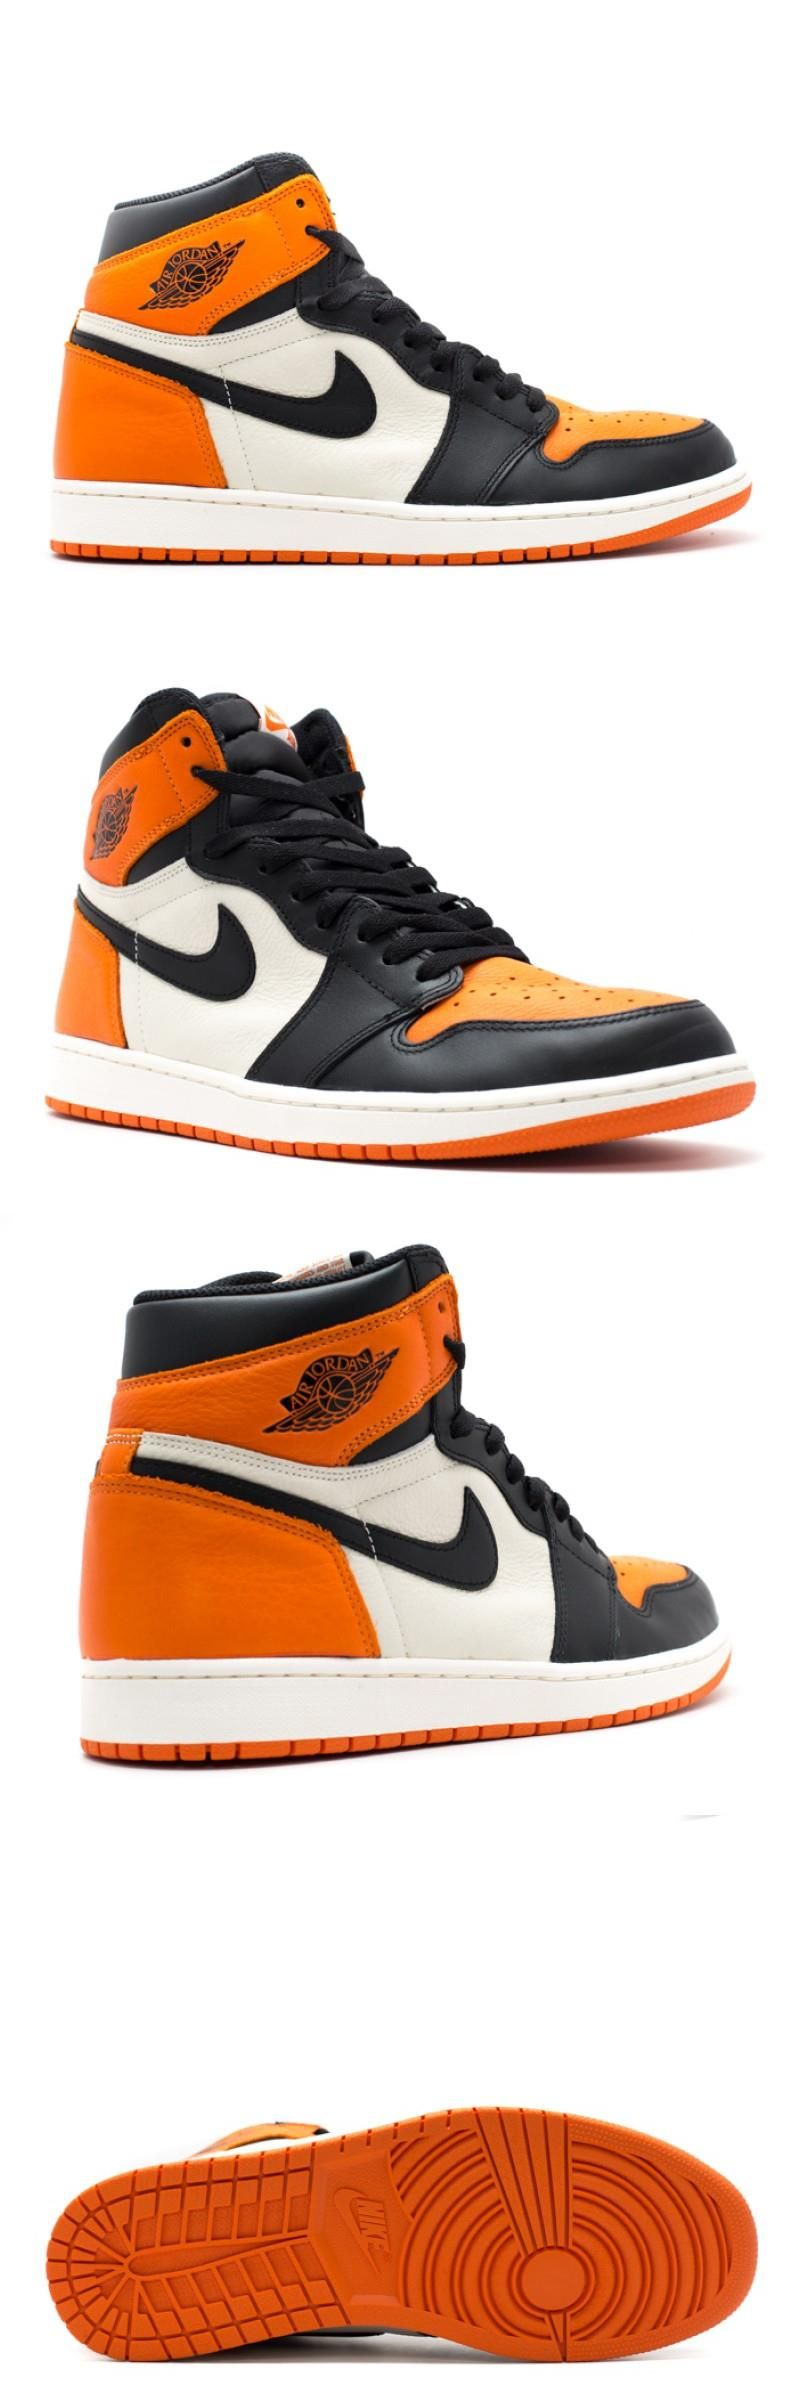 "2020 的 Air Jordan 1 Retro High Og ""shattered Backboard"